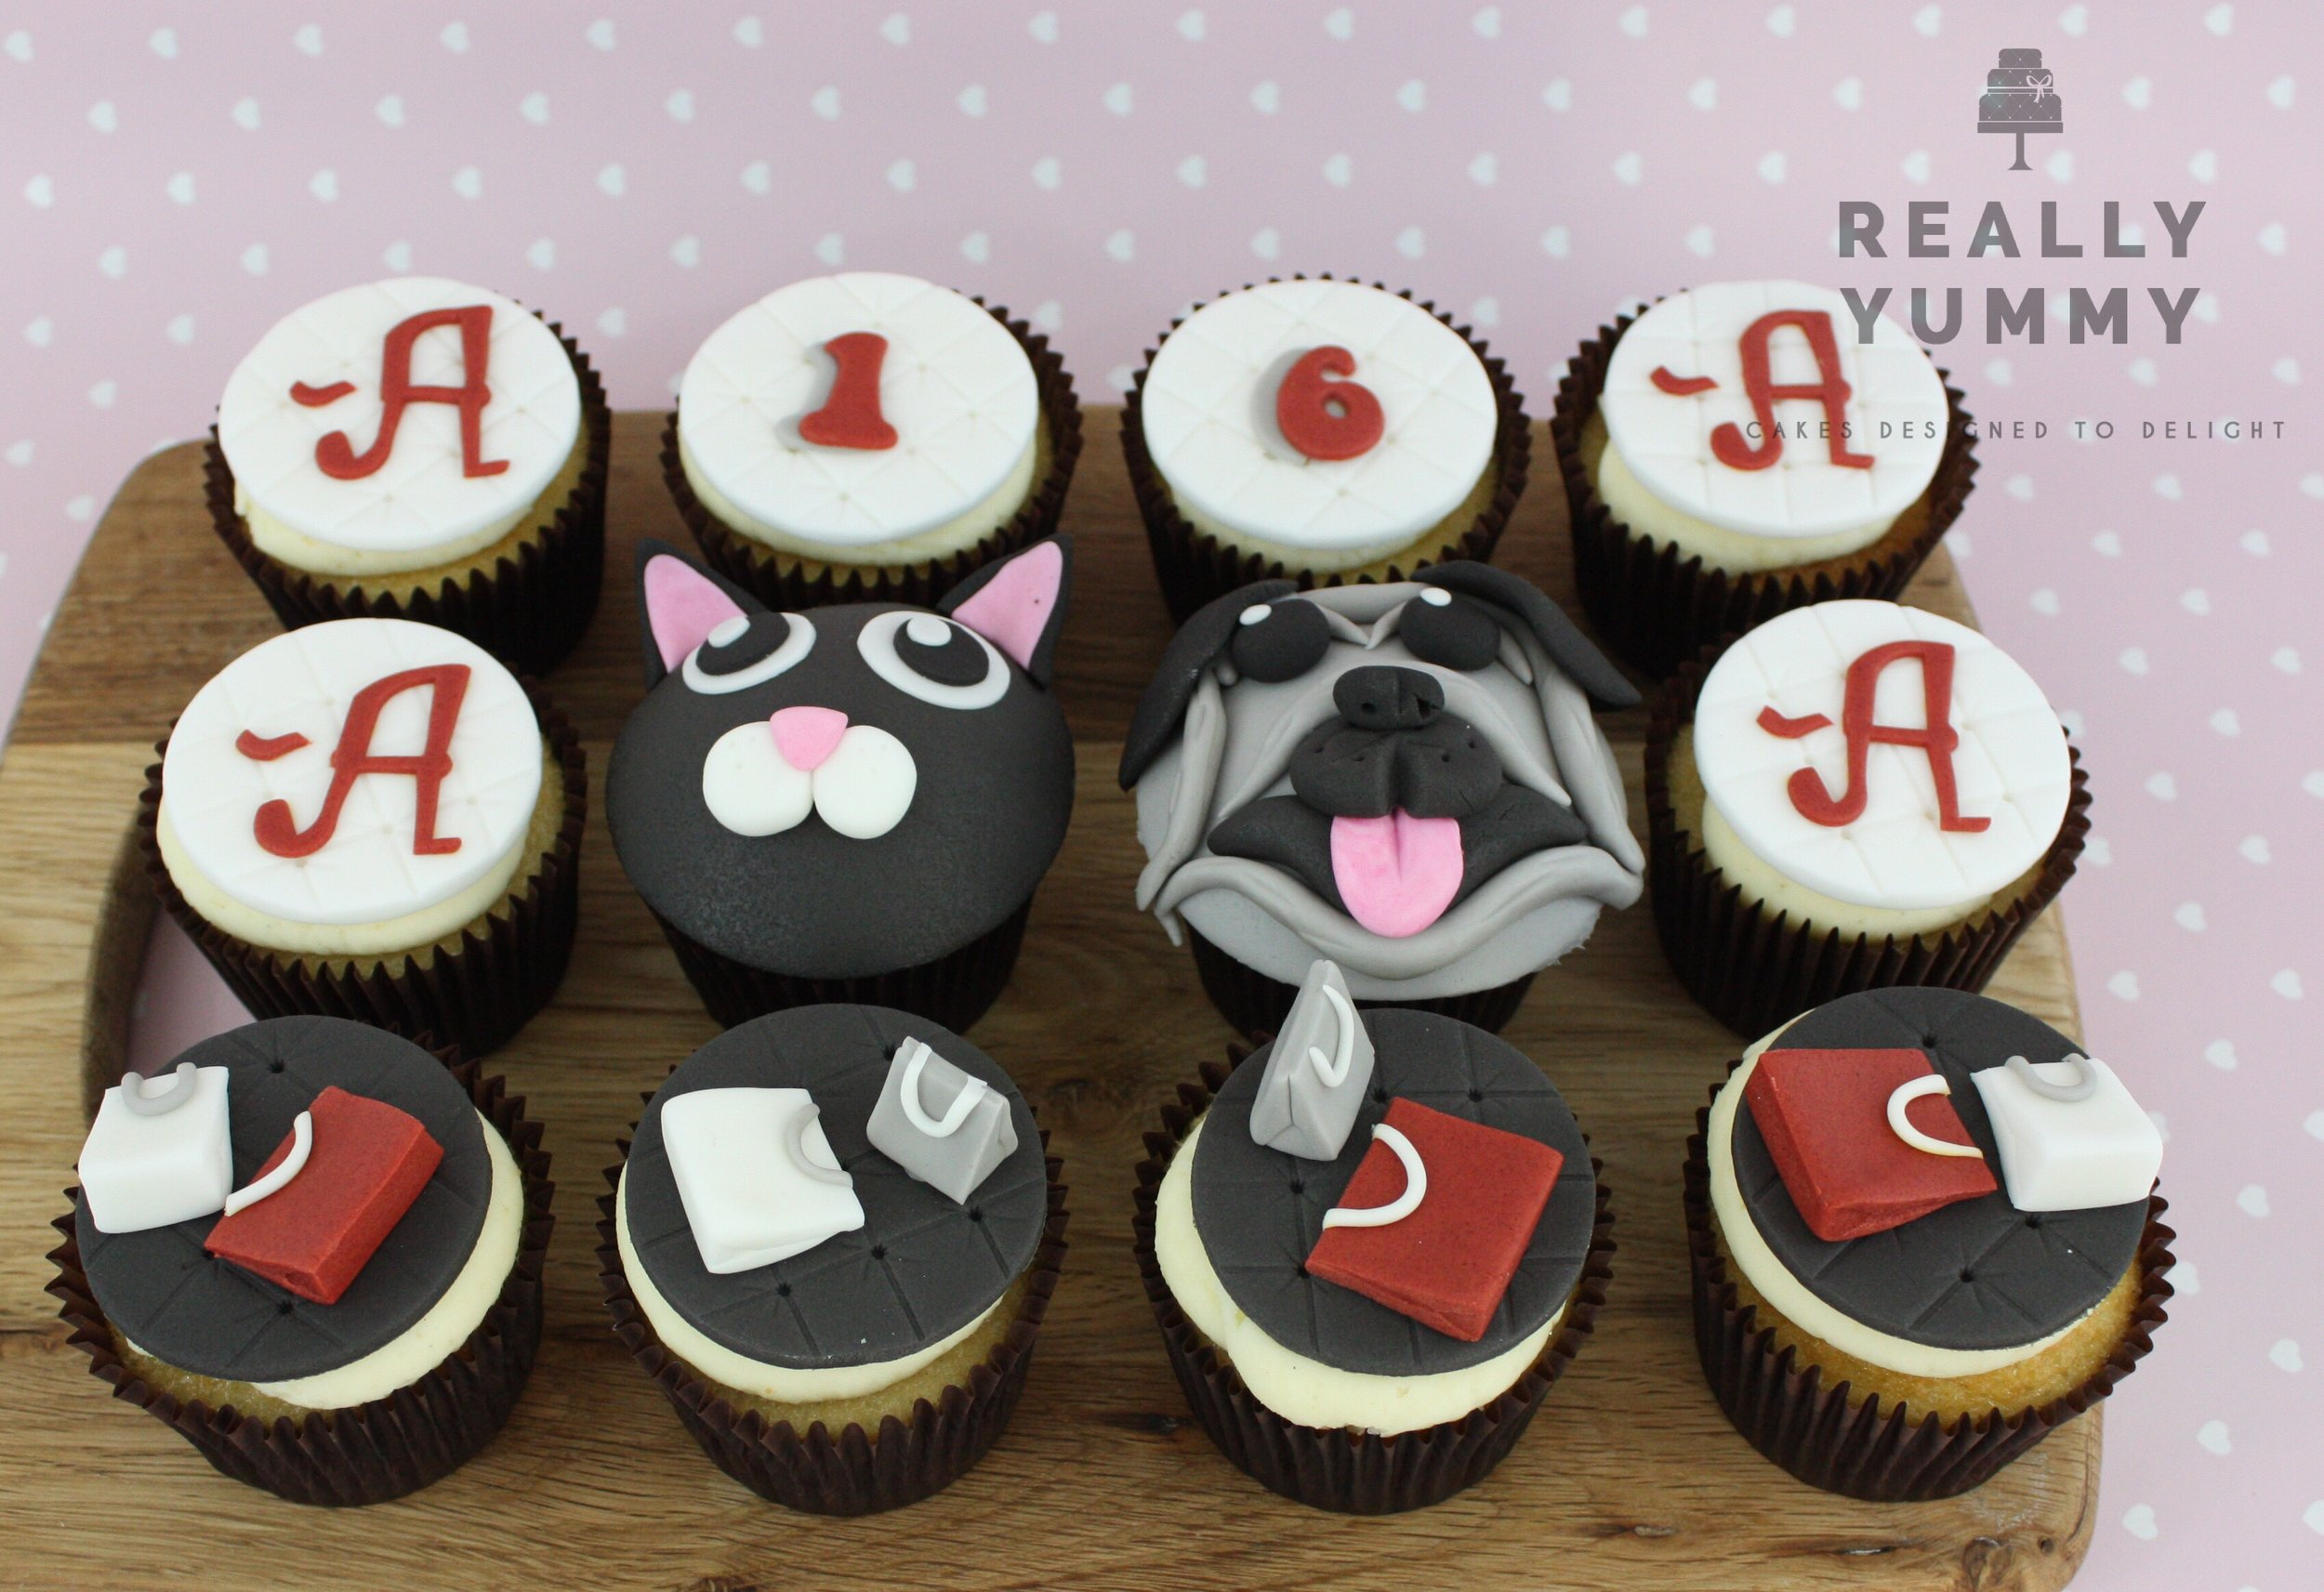 Pretty Little Liars, dogs, cats and shopping cupcakes